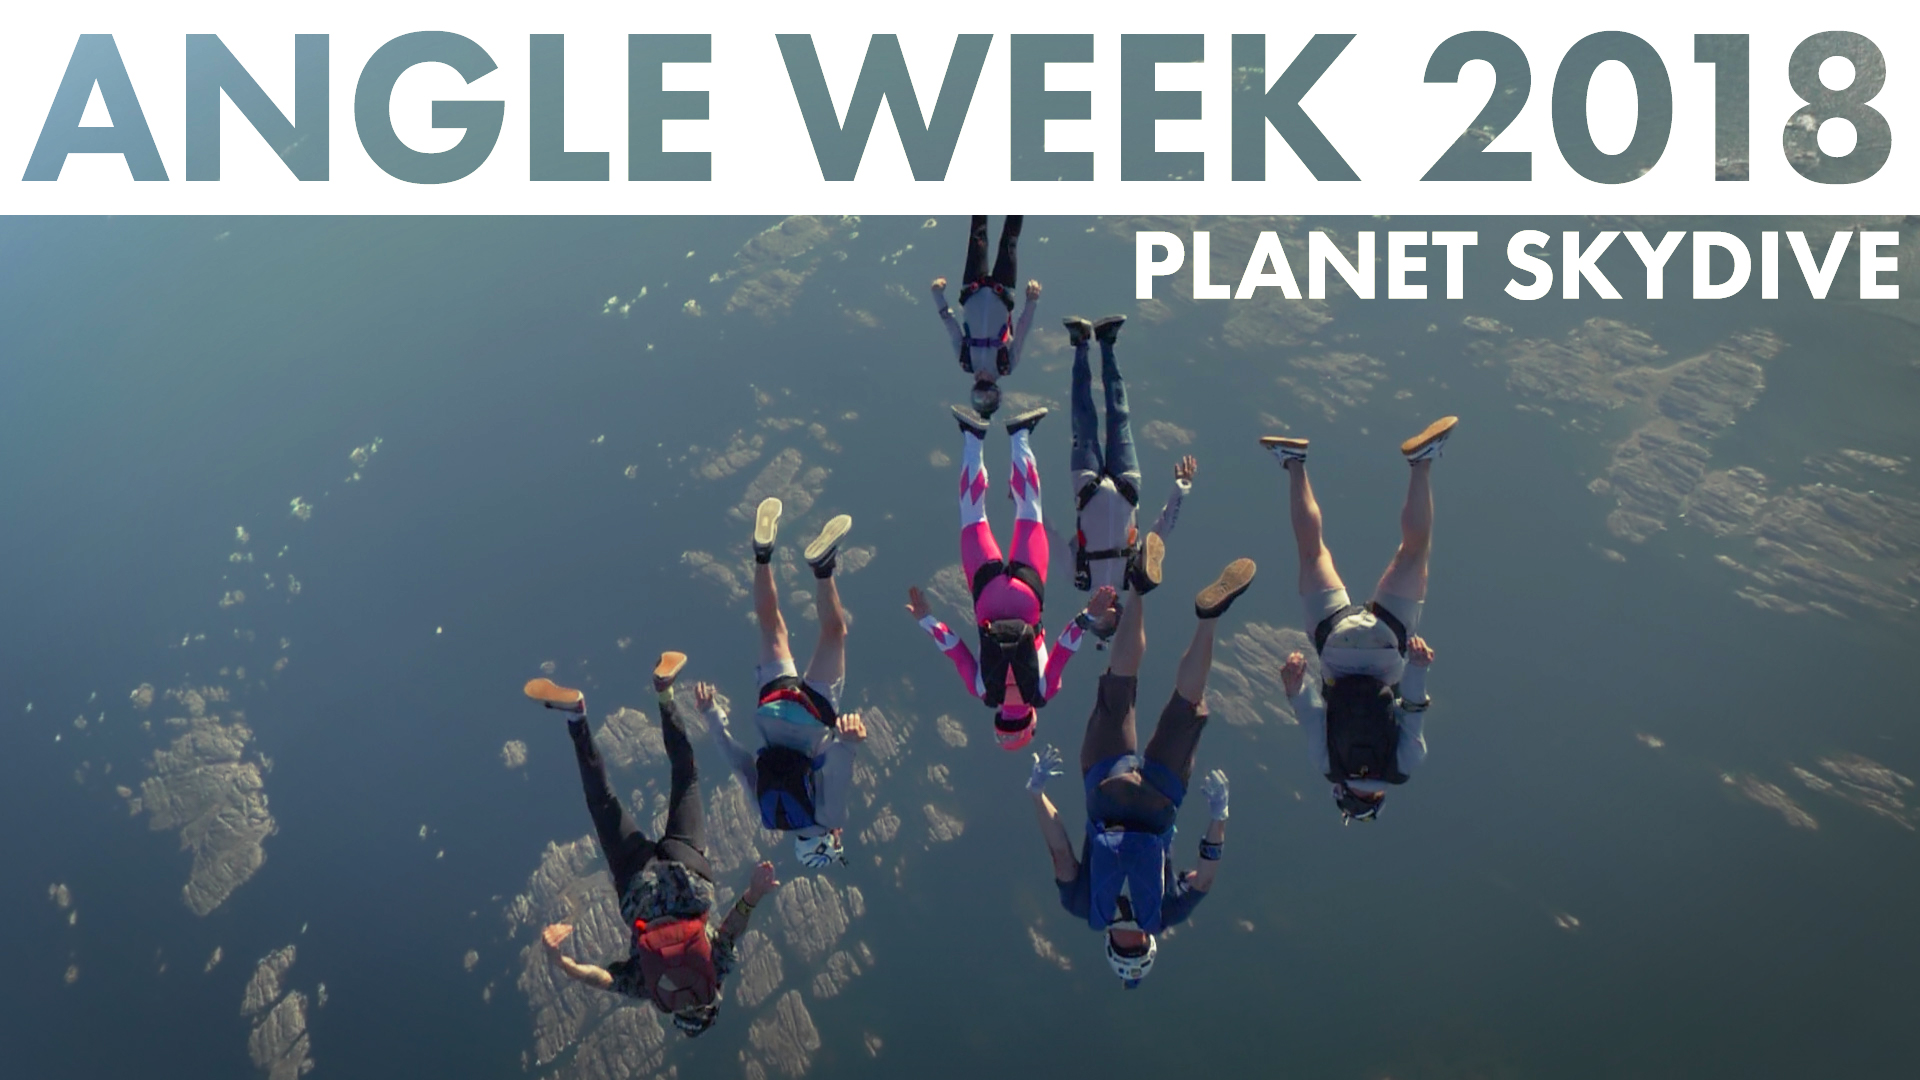 Angle week 2018 // planet skydive